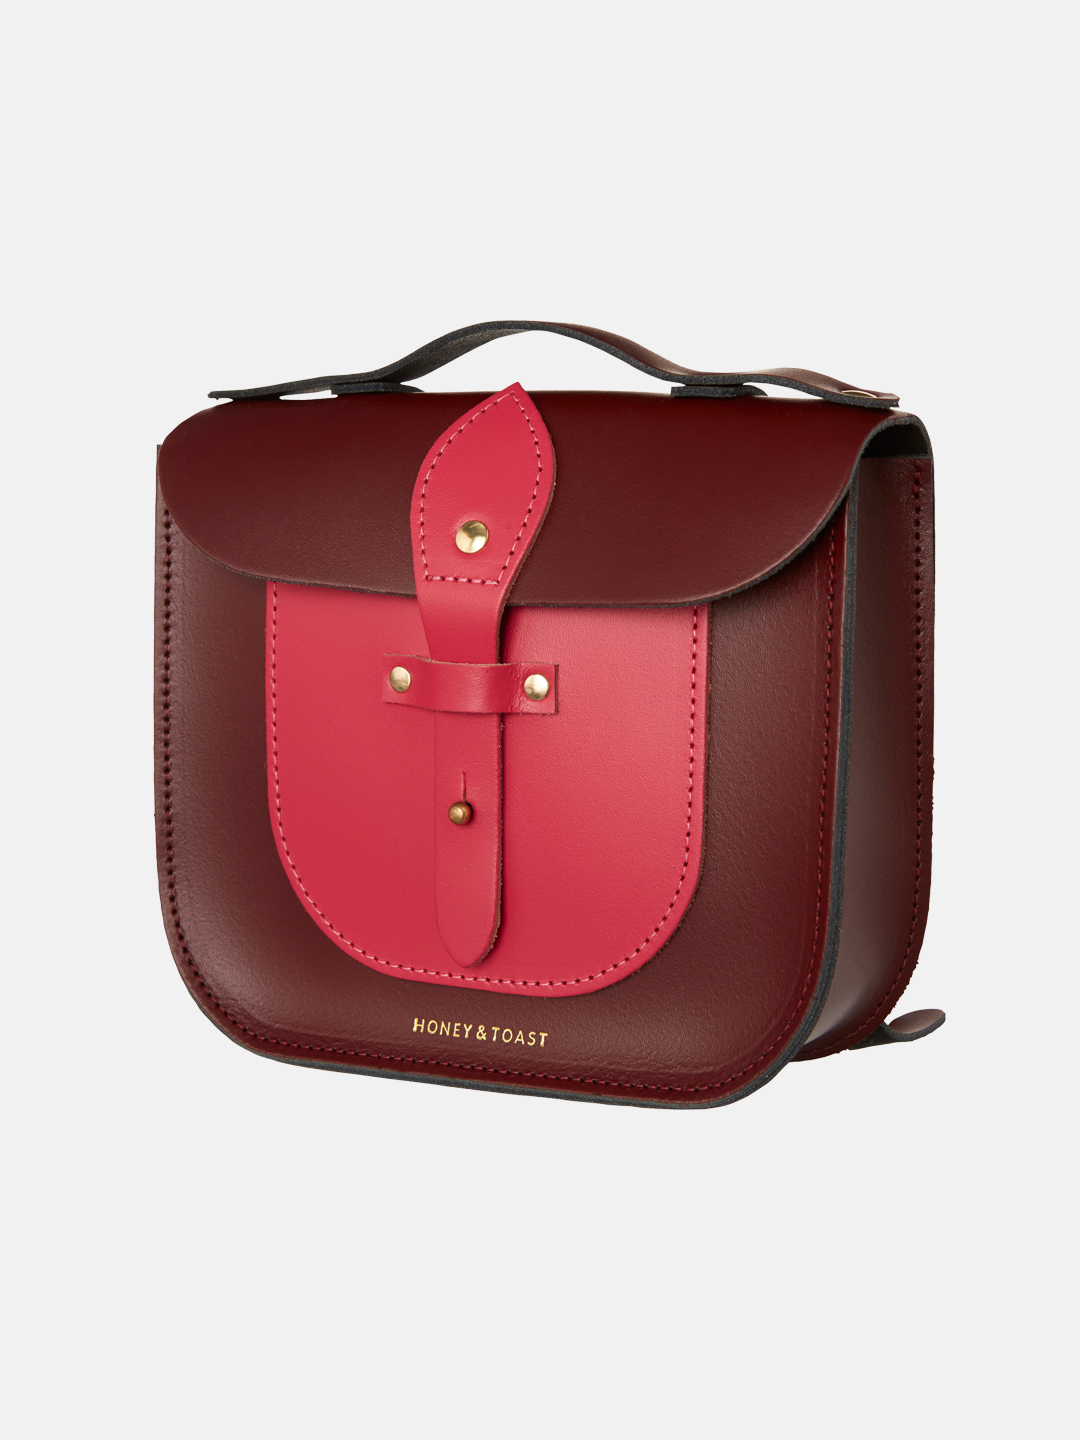 Rocket Scooter Satchel - Wine Gum Red & Bright Pink